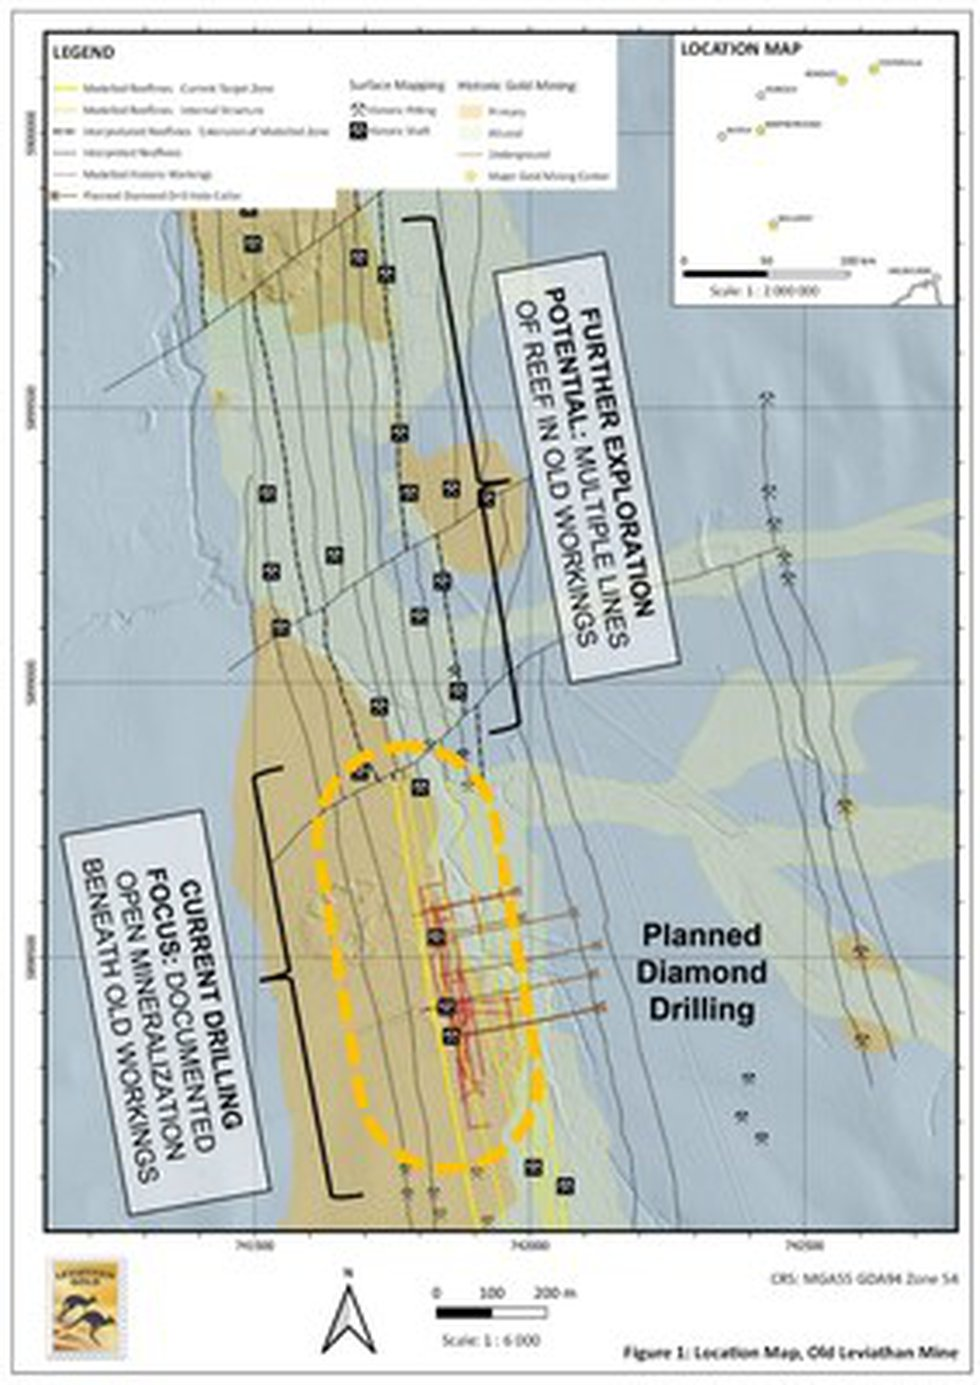 Figure 1: Location Map, Old Leviathan Mine (CNW Group/Leviathan Gold Ltd)